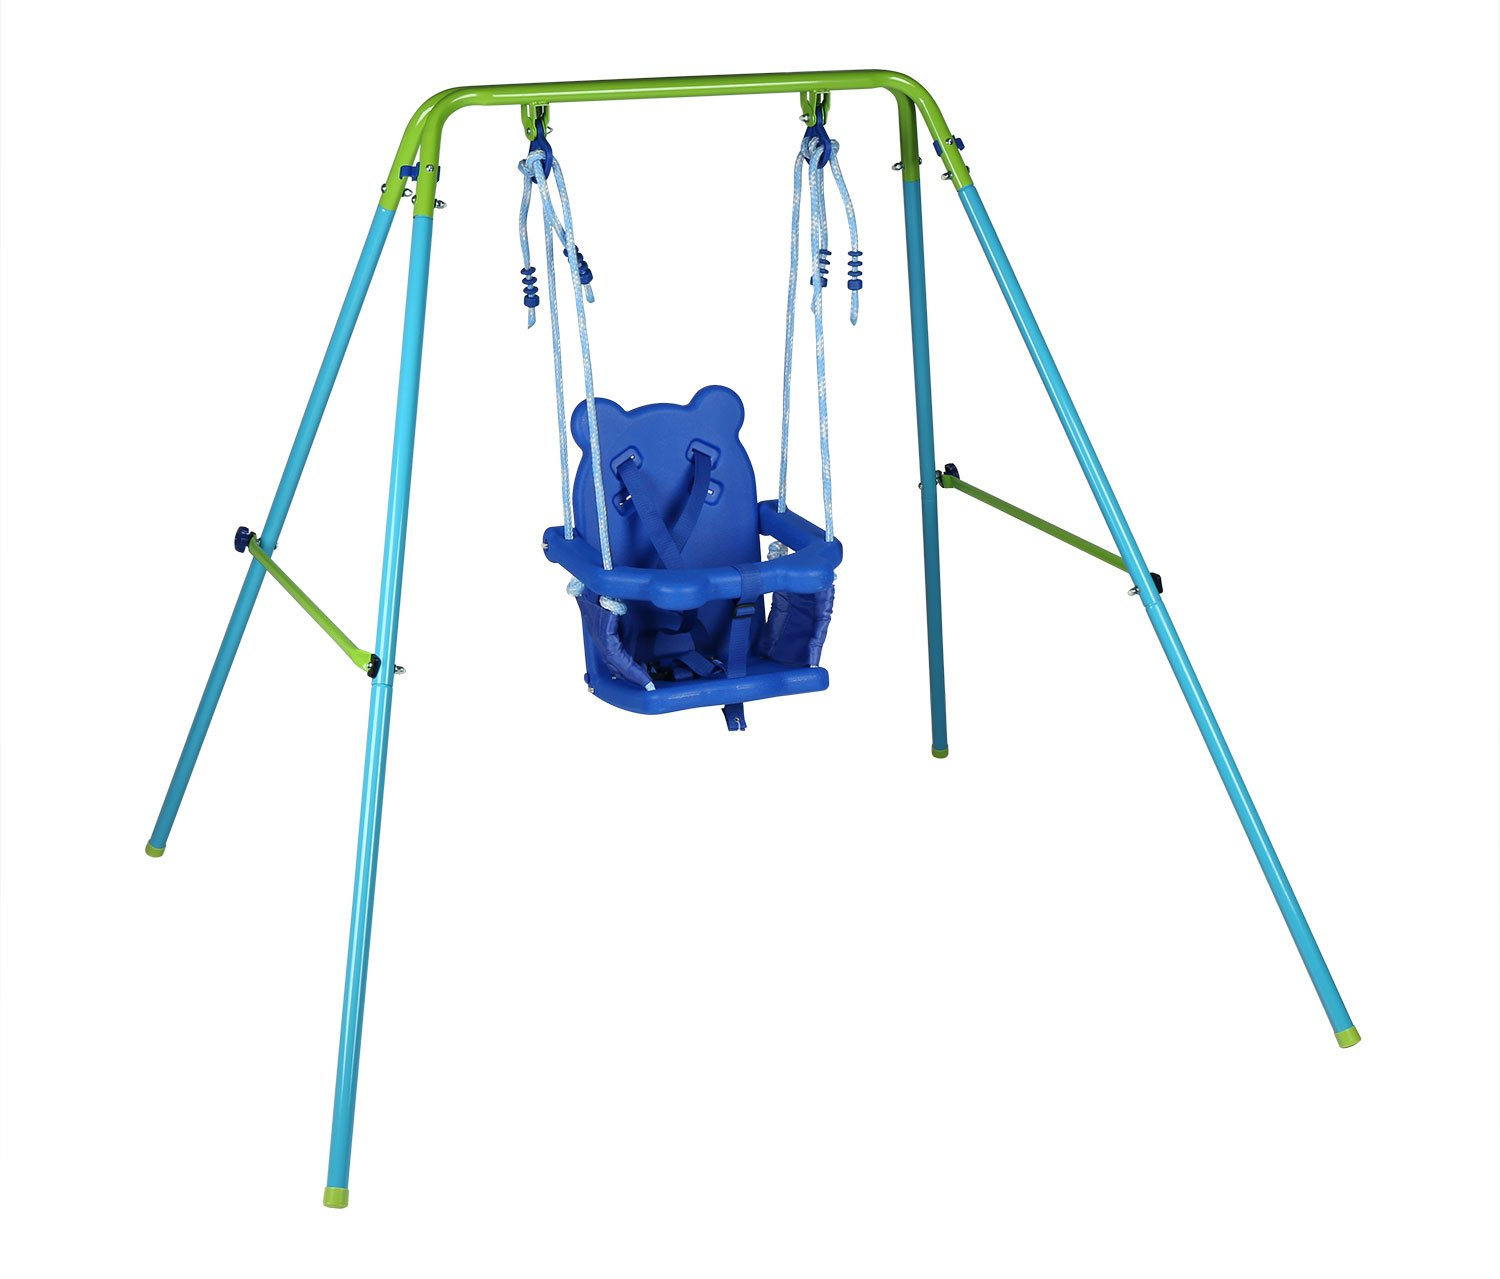 Blue Folding Swing Outdoor Indoor Swing Toddler Swing With Safety Baby Seat  For Baby/chirldrenu0027s